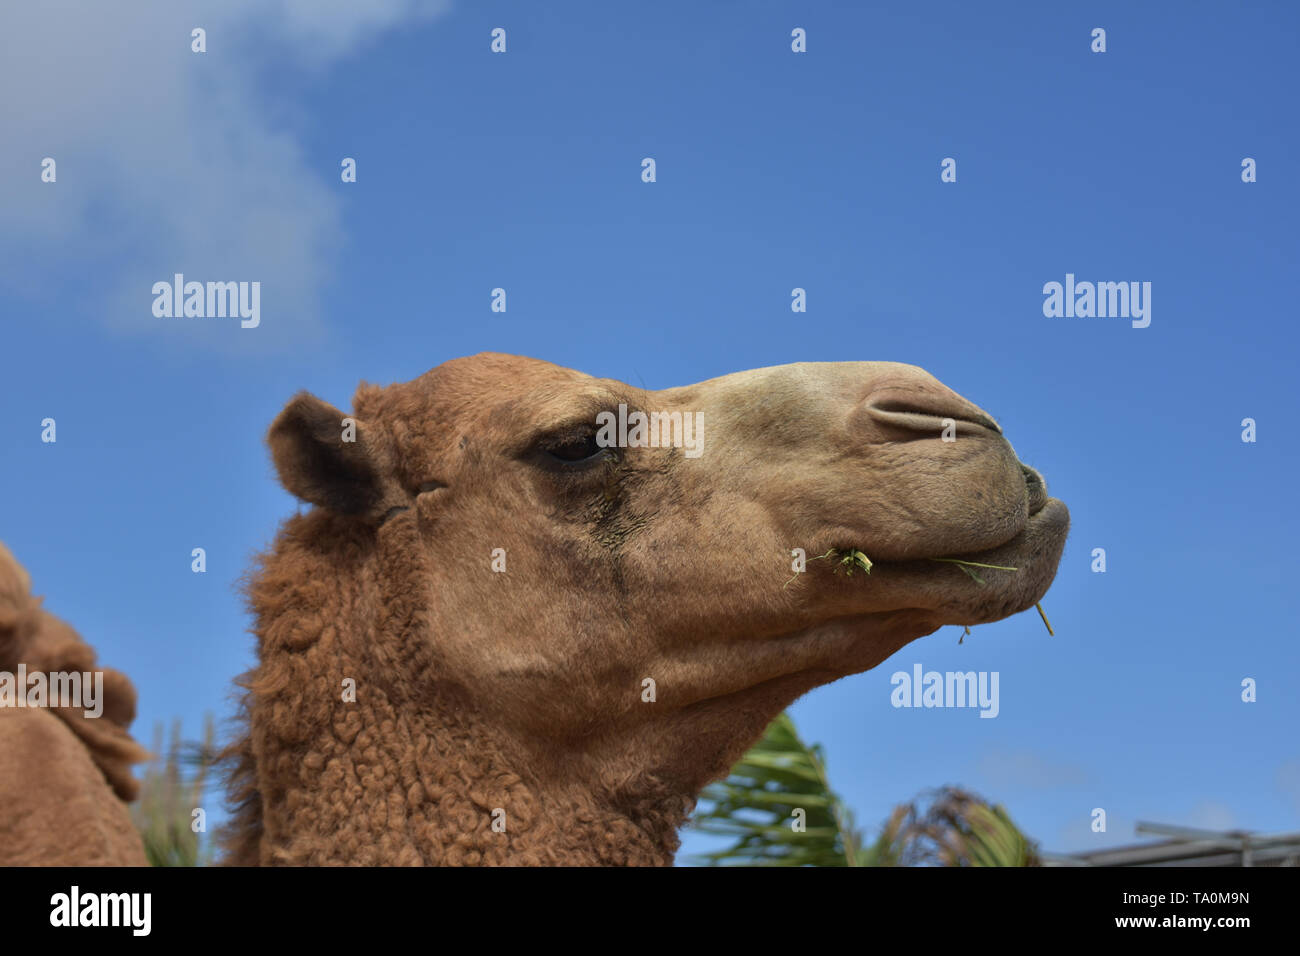 Stunning profile of a ruminating camel in the tropics. - Stock Image